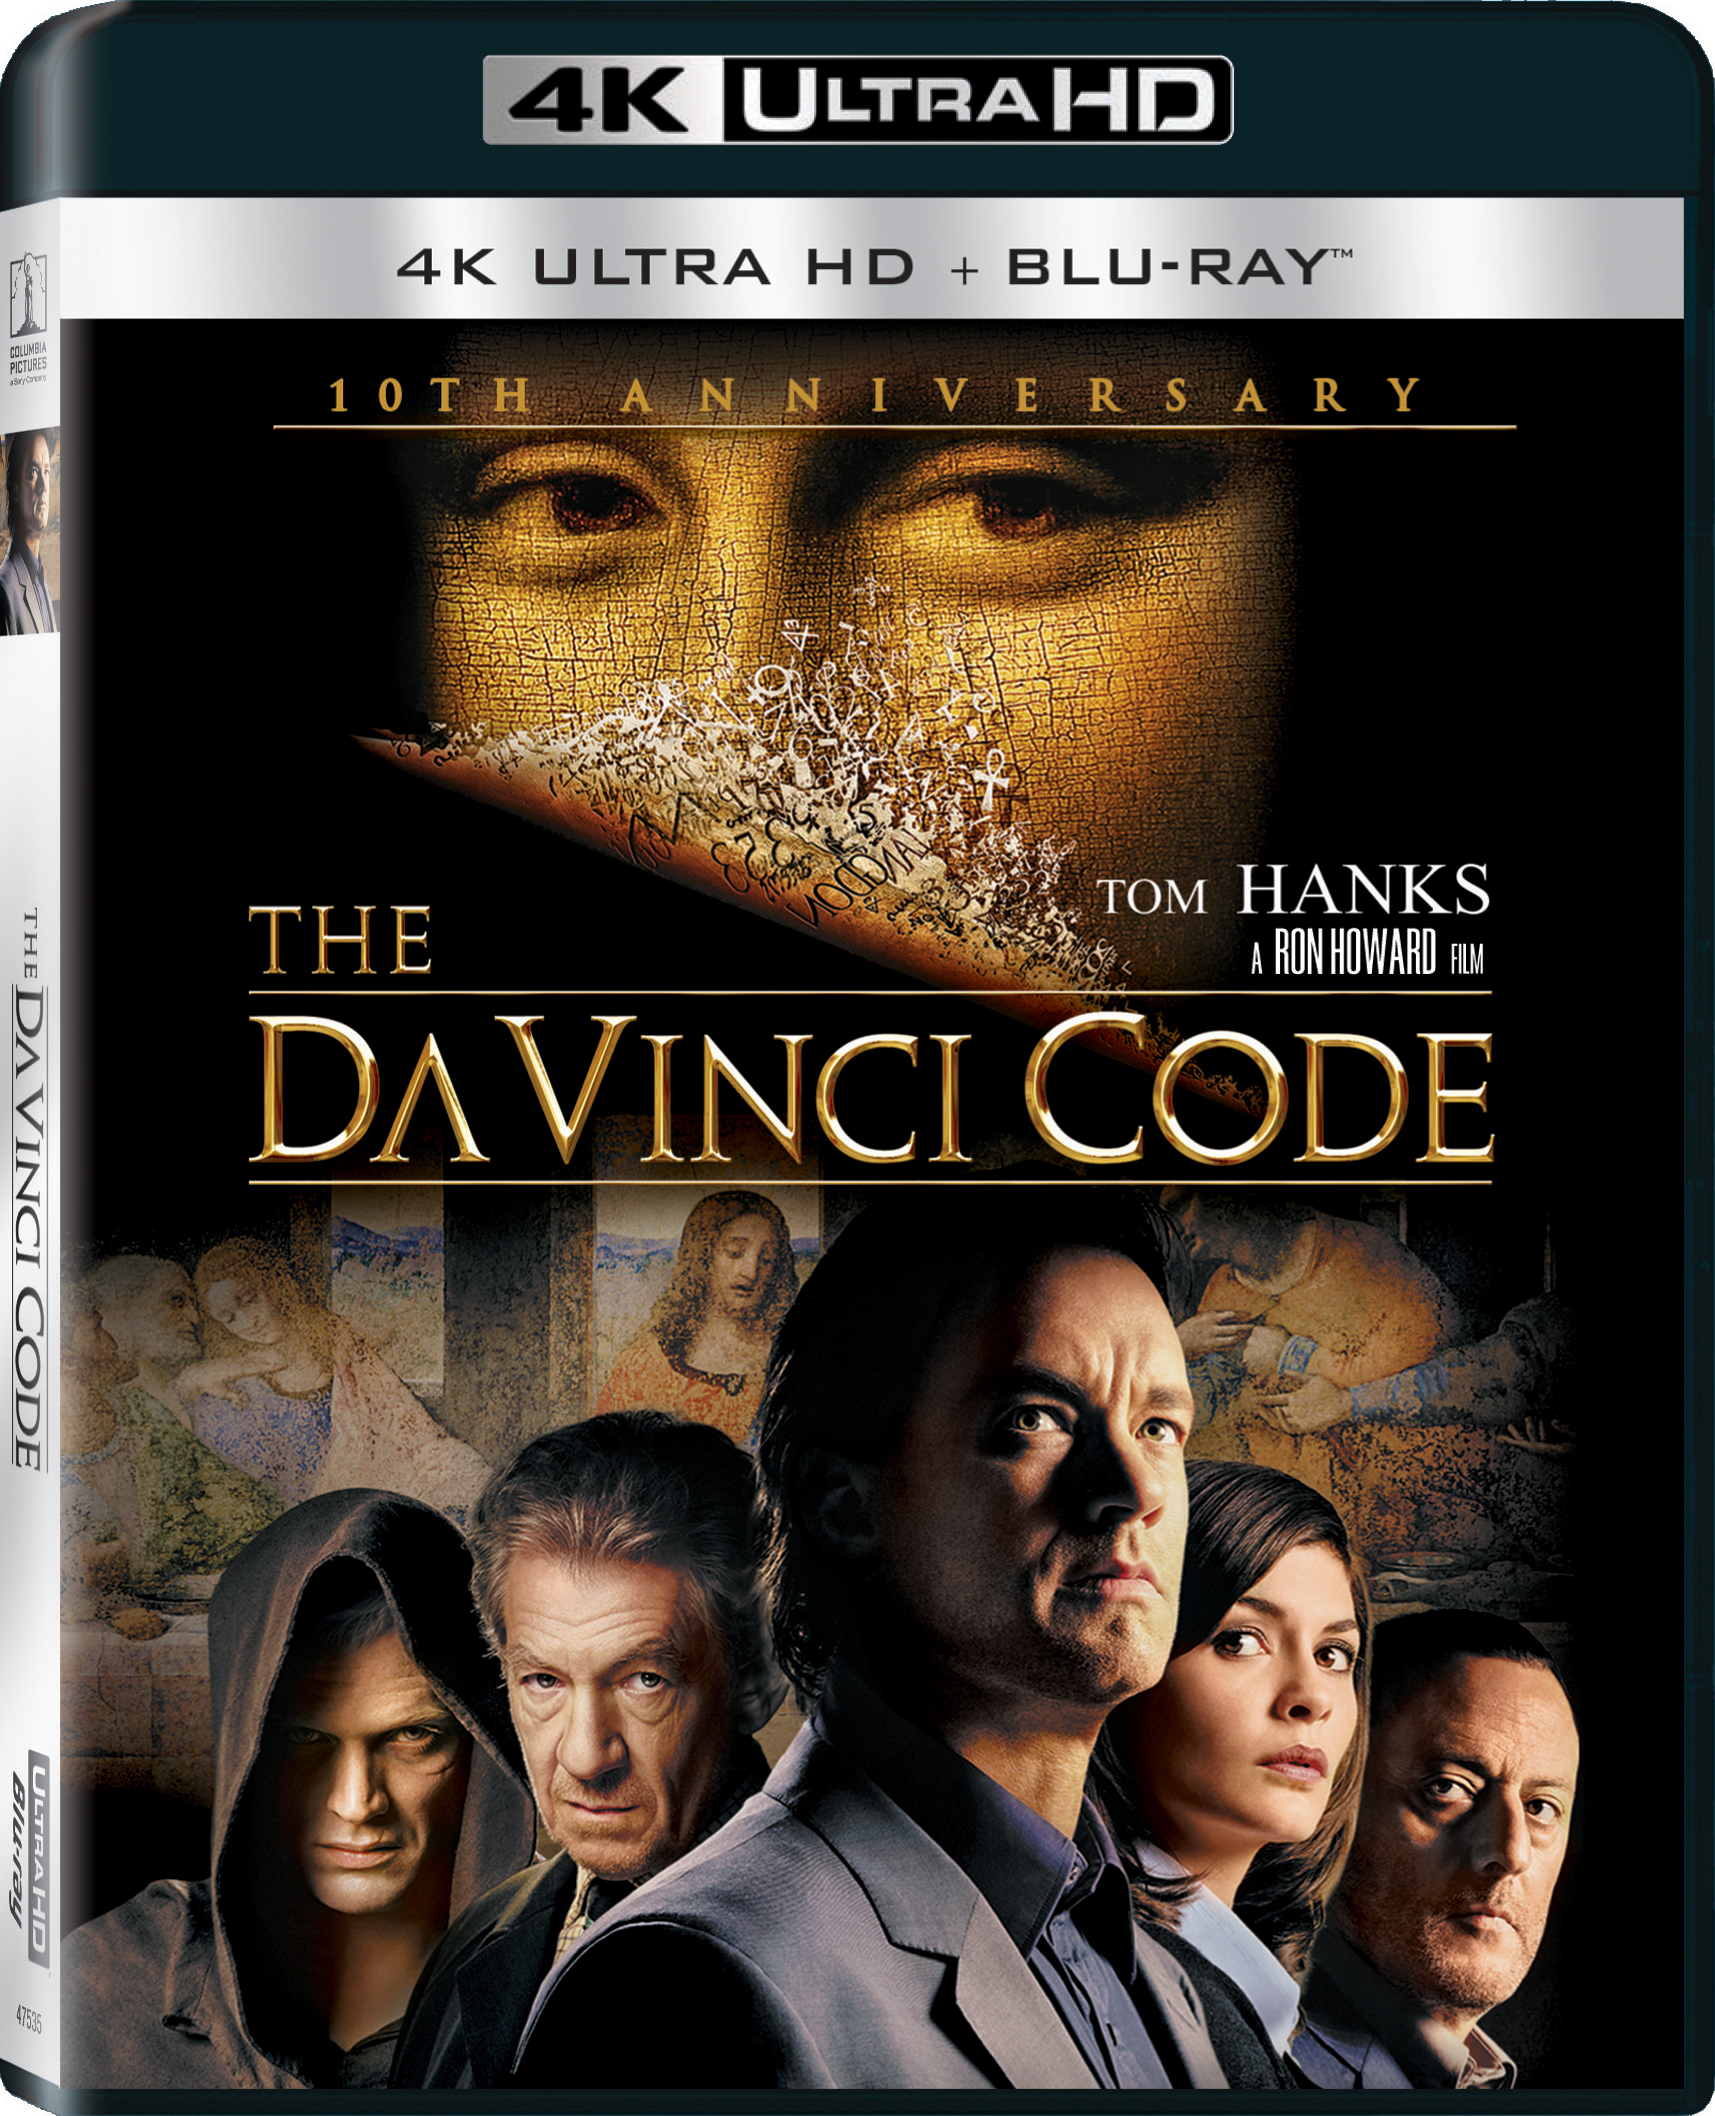 The Da Vinci Code 2006 4k Ultra Hd Blu Ray